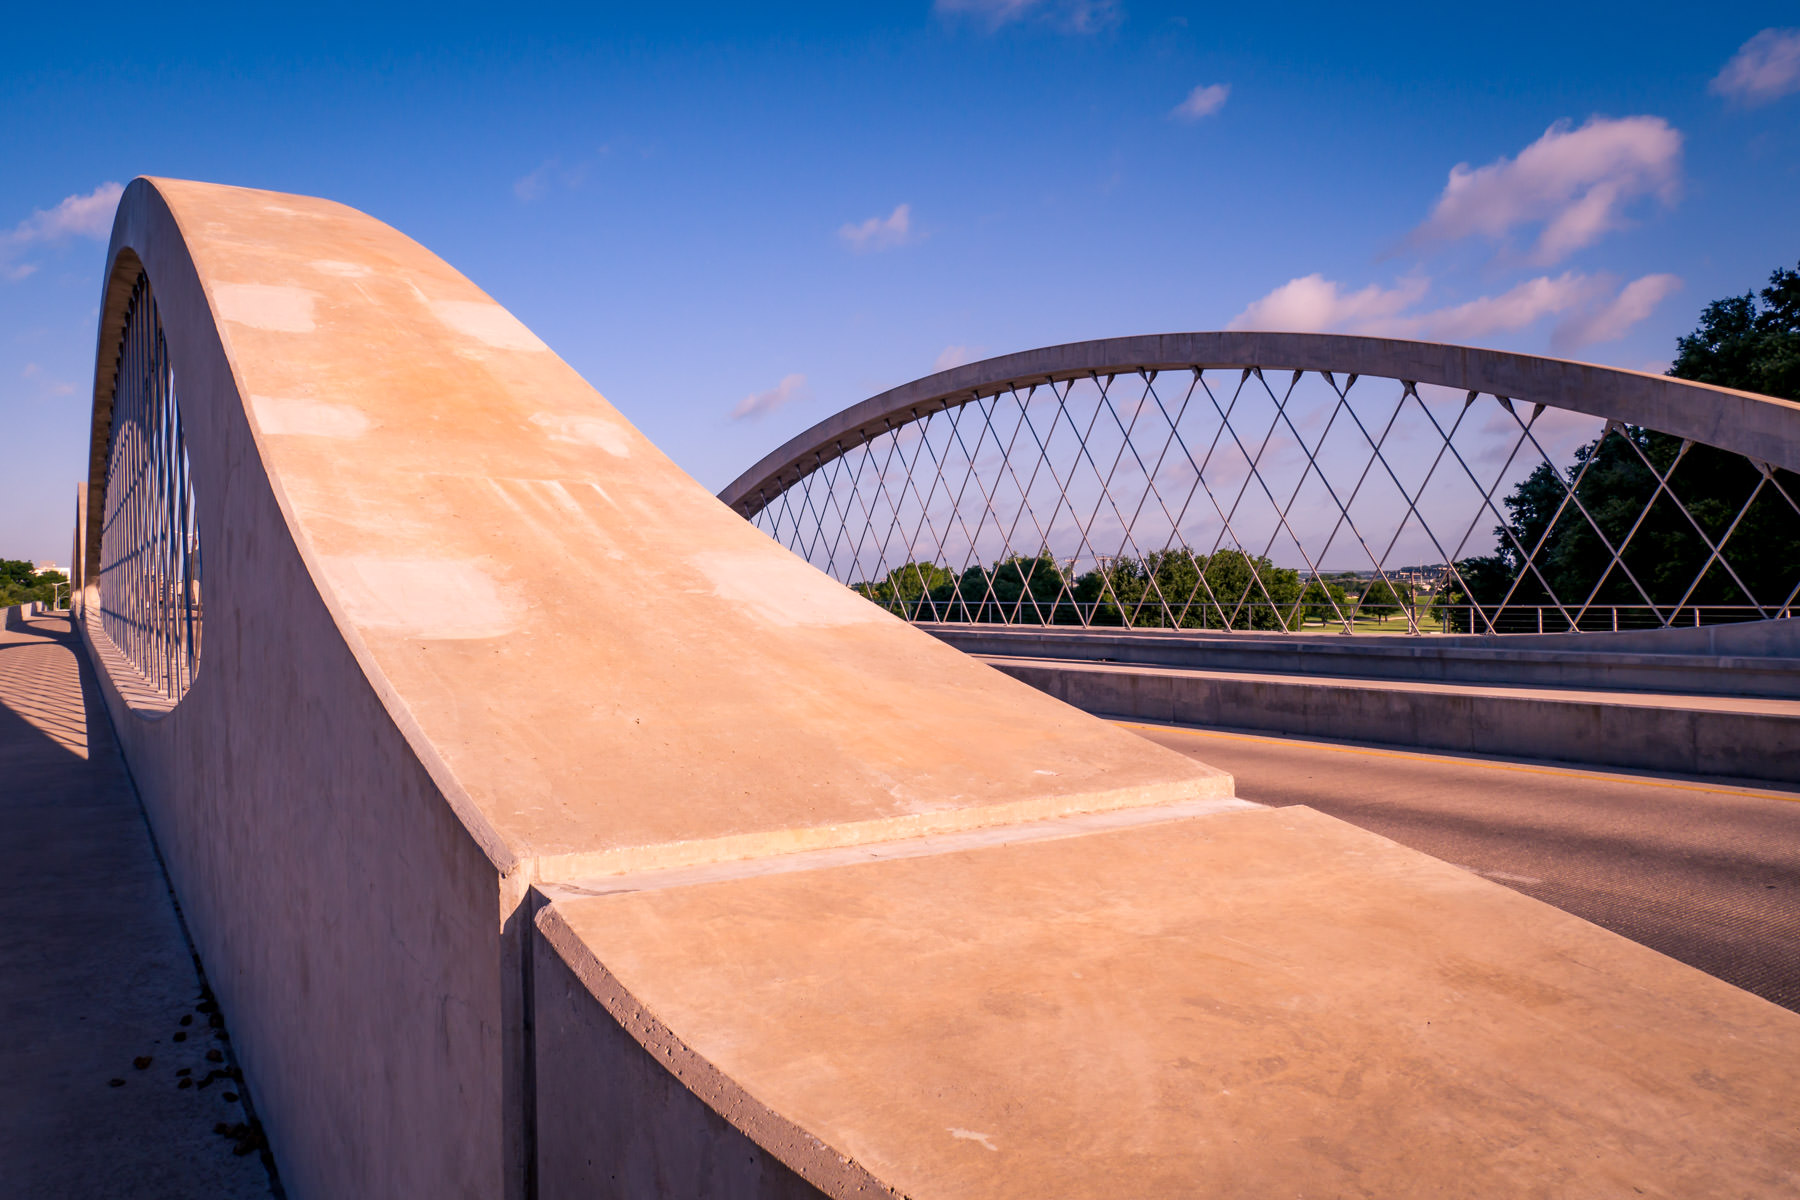 The arches of Fort Worth, Texas' iconic West Seventh Street Bridge rise and dip in the North Texas sky.